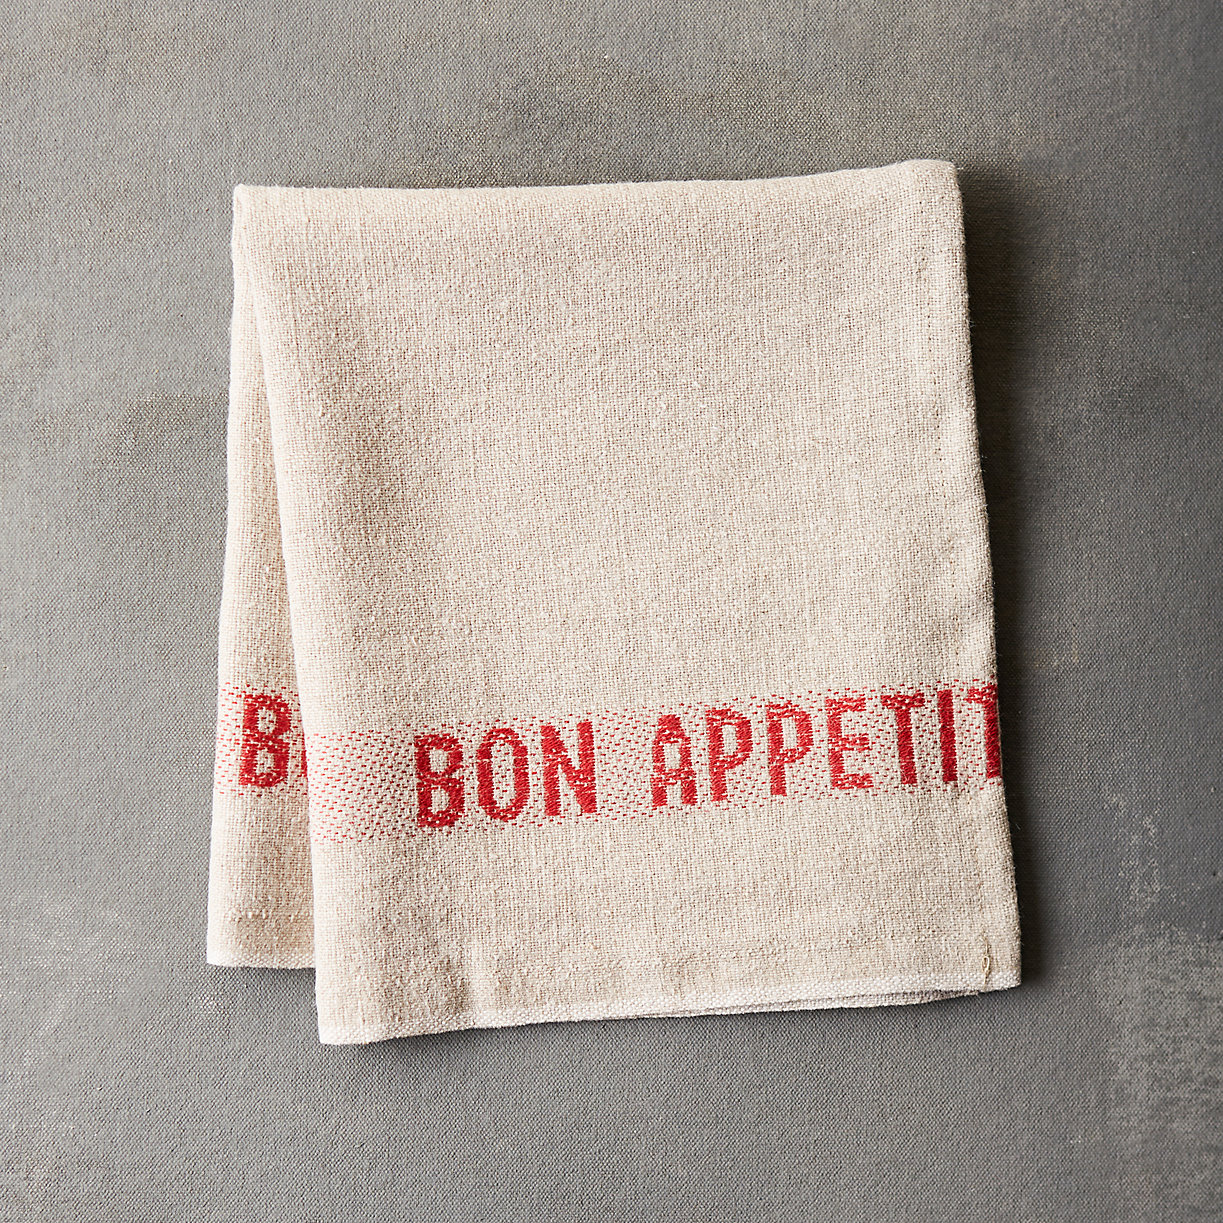 Linen Wedding Anniversary Gifts, Linen Napkins